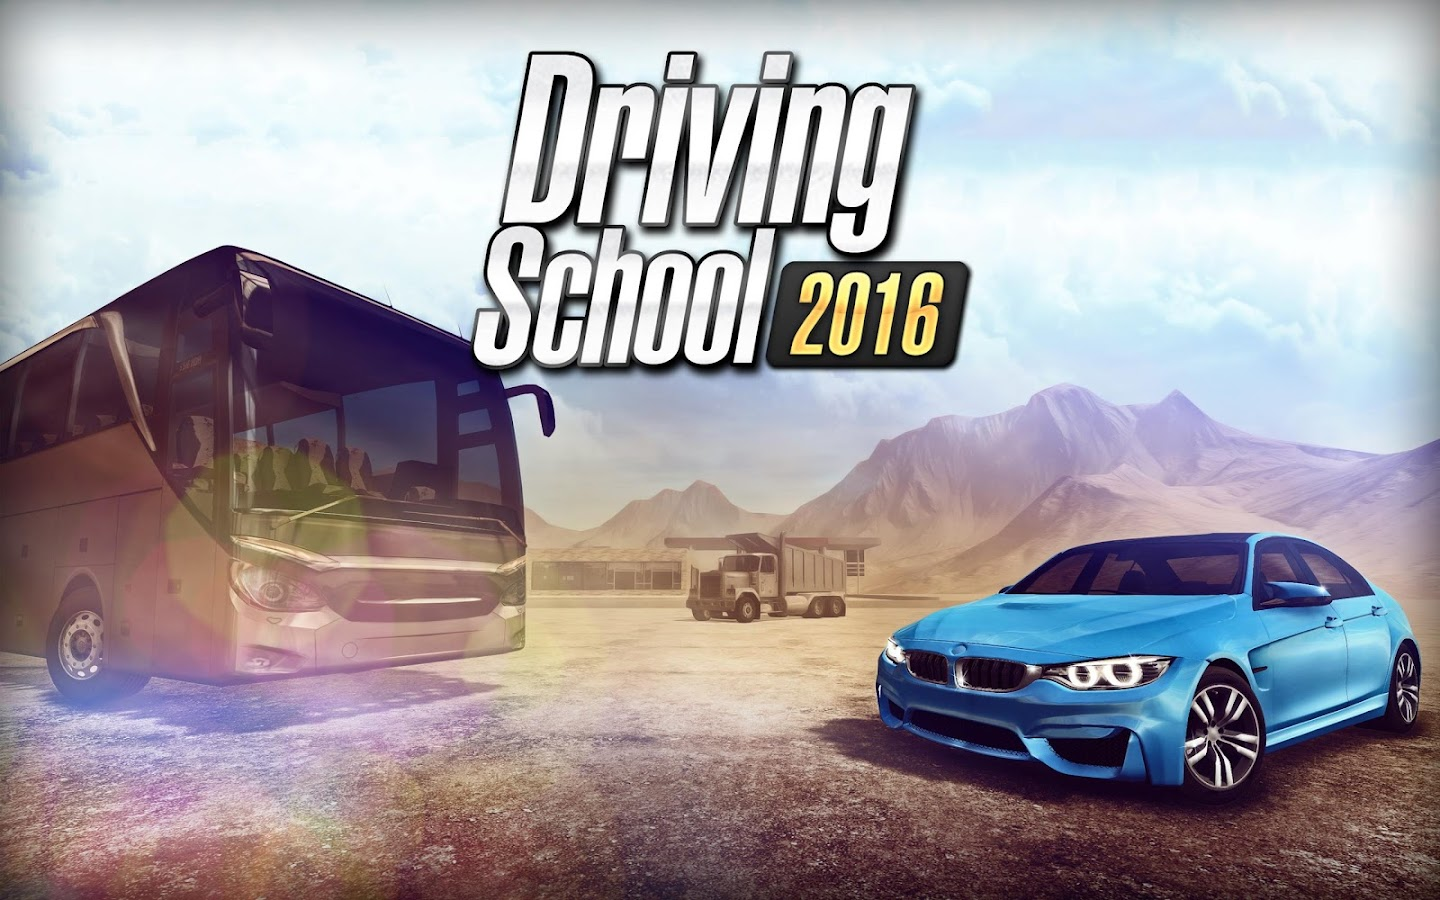 Driving School 2016 Screenshot 0